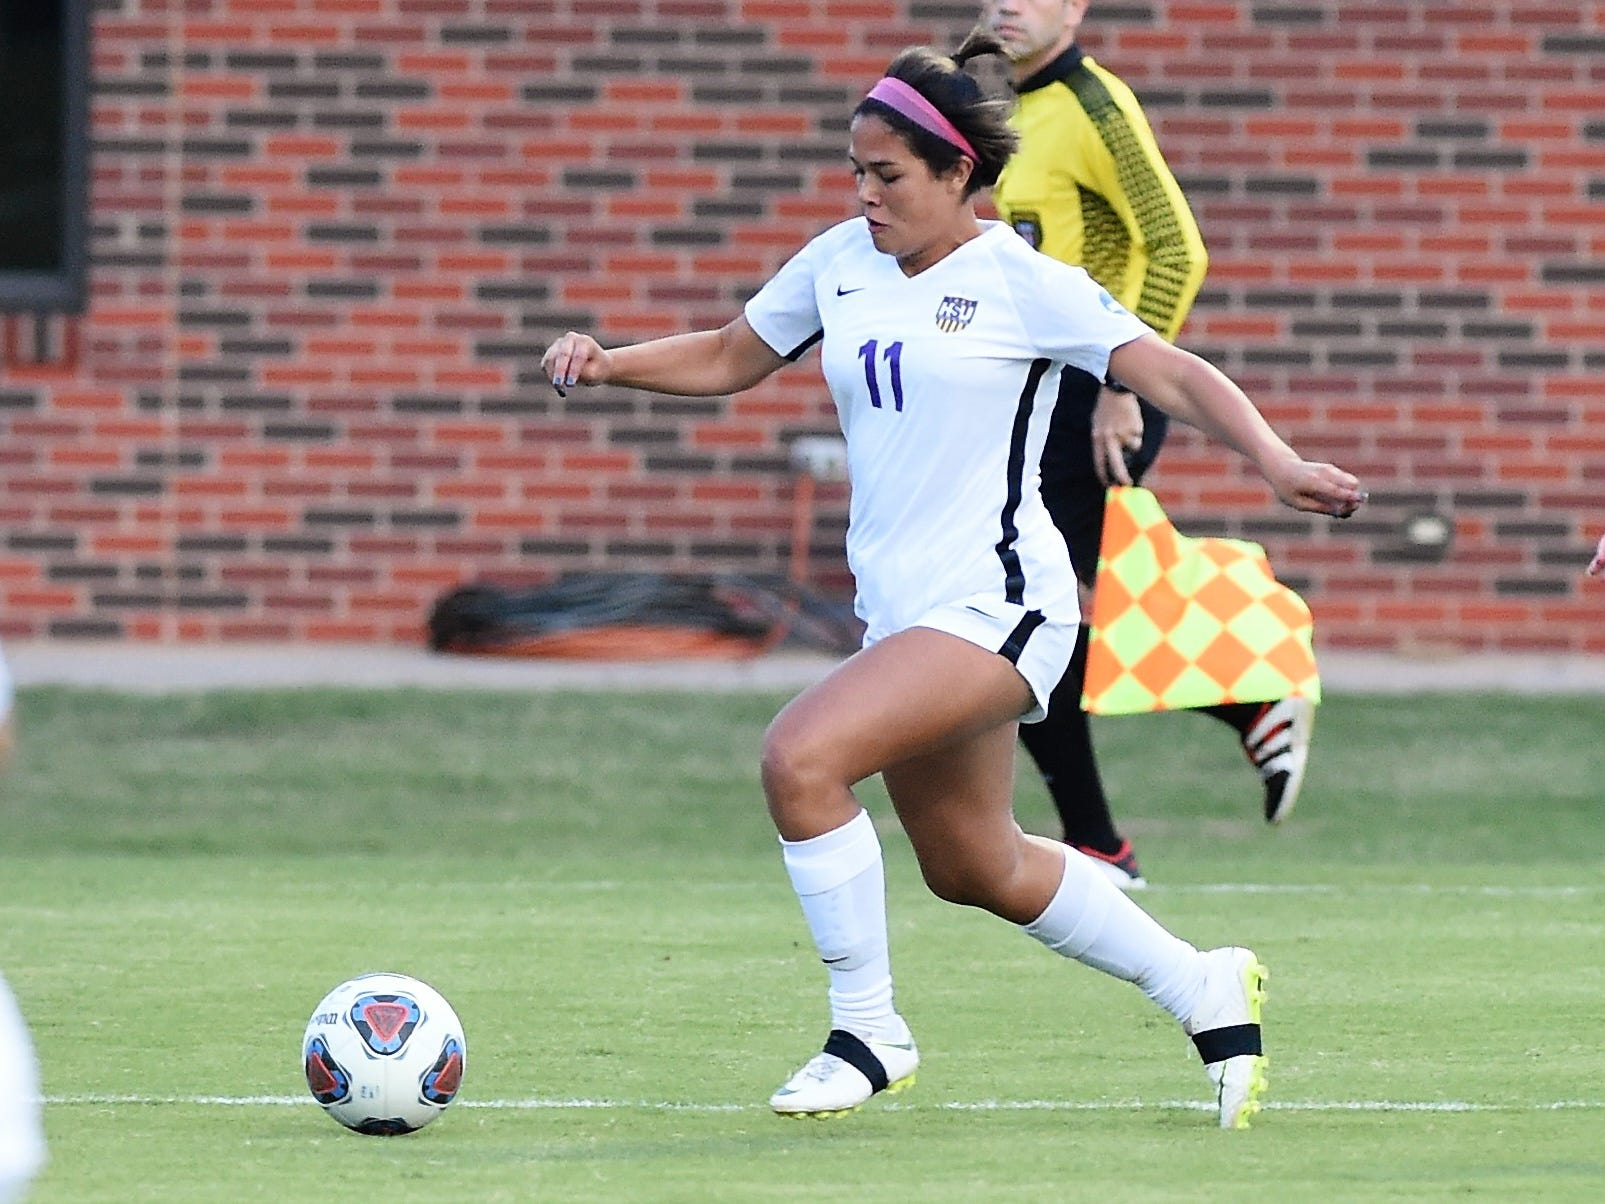 Hardin-Simmons defender Avery Lara (11) carries the ball downfield against Howard Payne at the HSU Soccer Complex on Thursday, Oct. 11, 2018. The Cowgirls won 4-1.